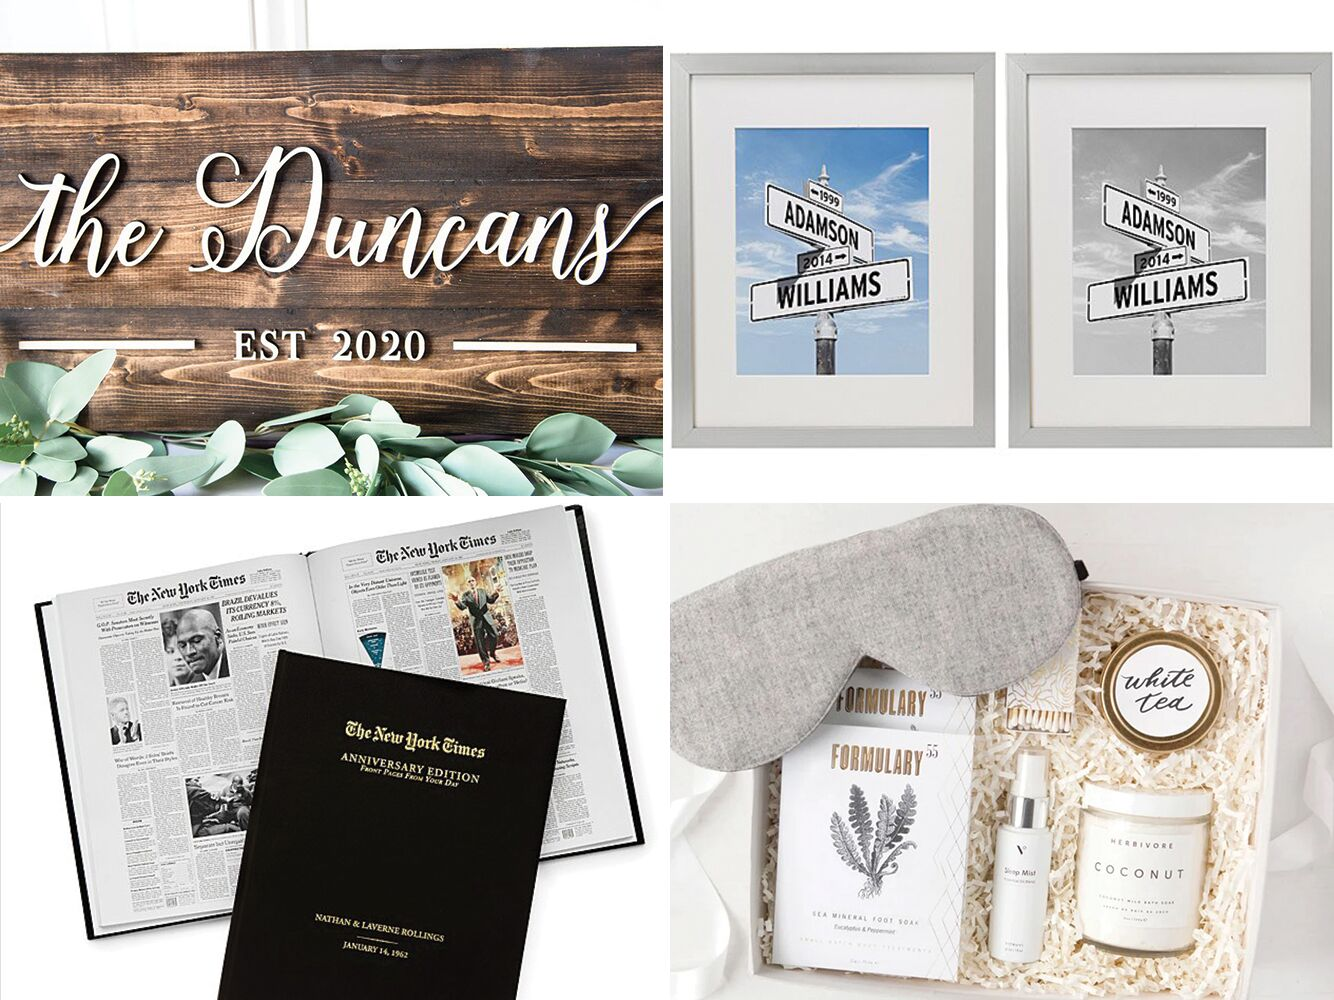 20th Anniversary Gift Ideas for Her